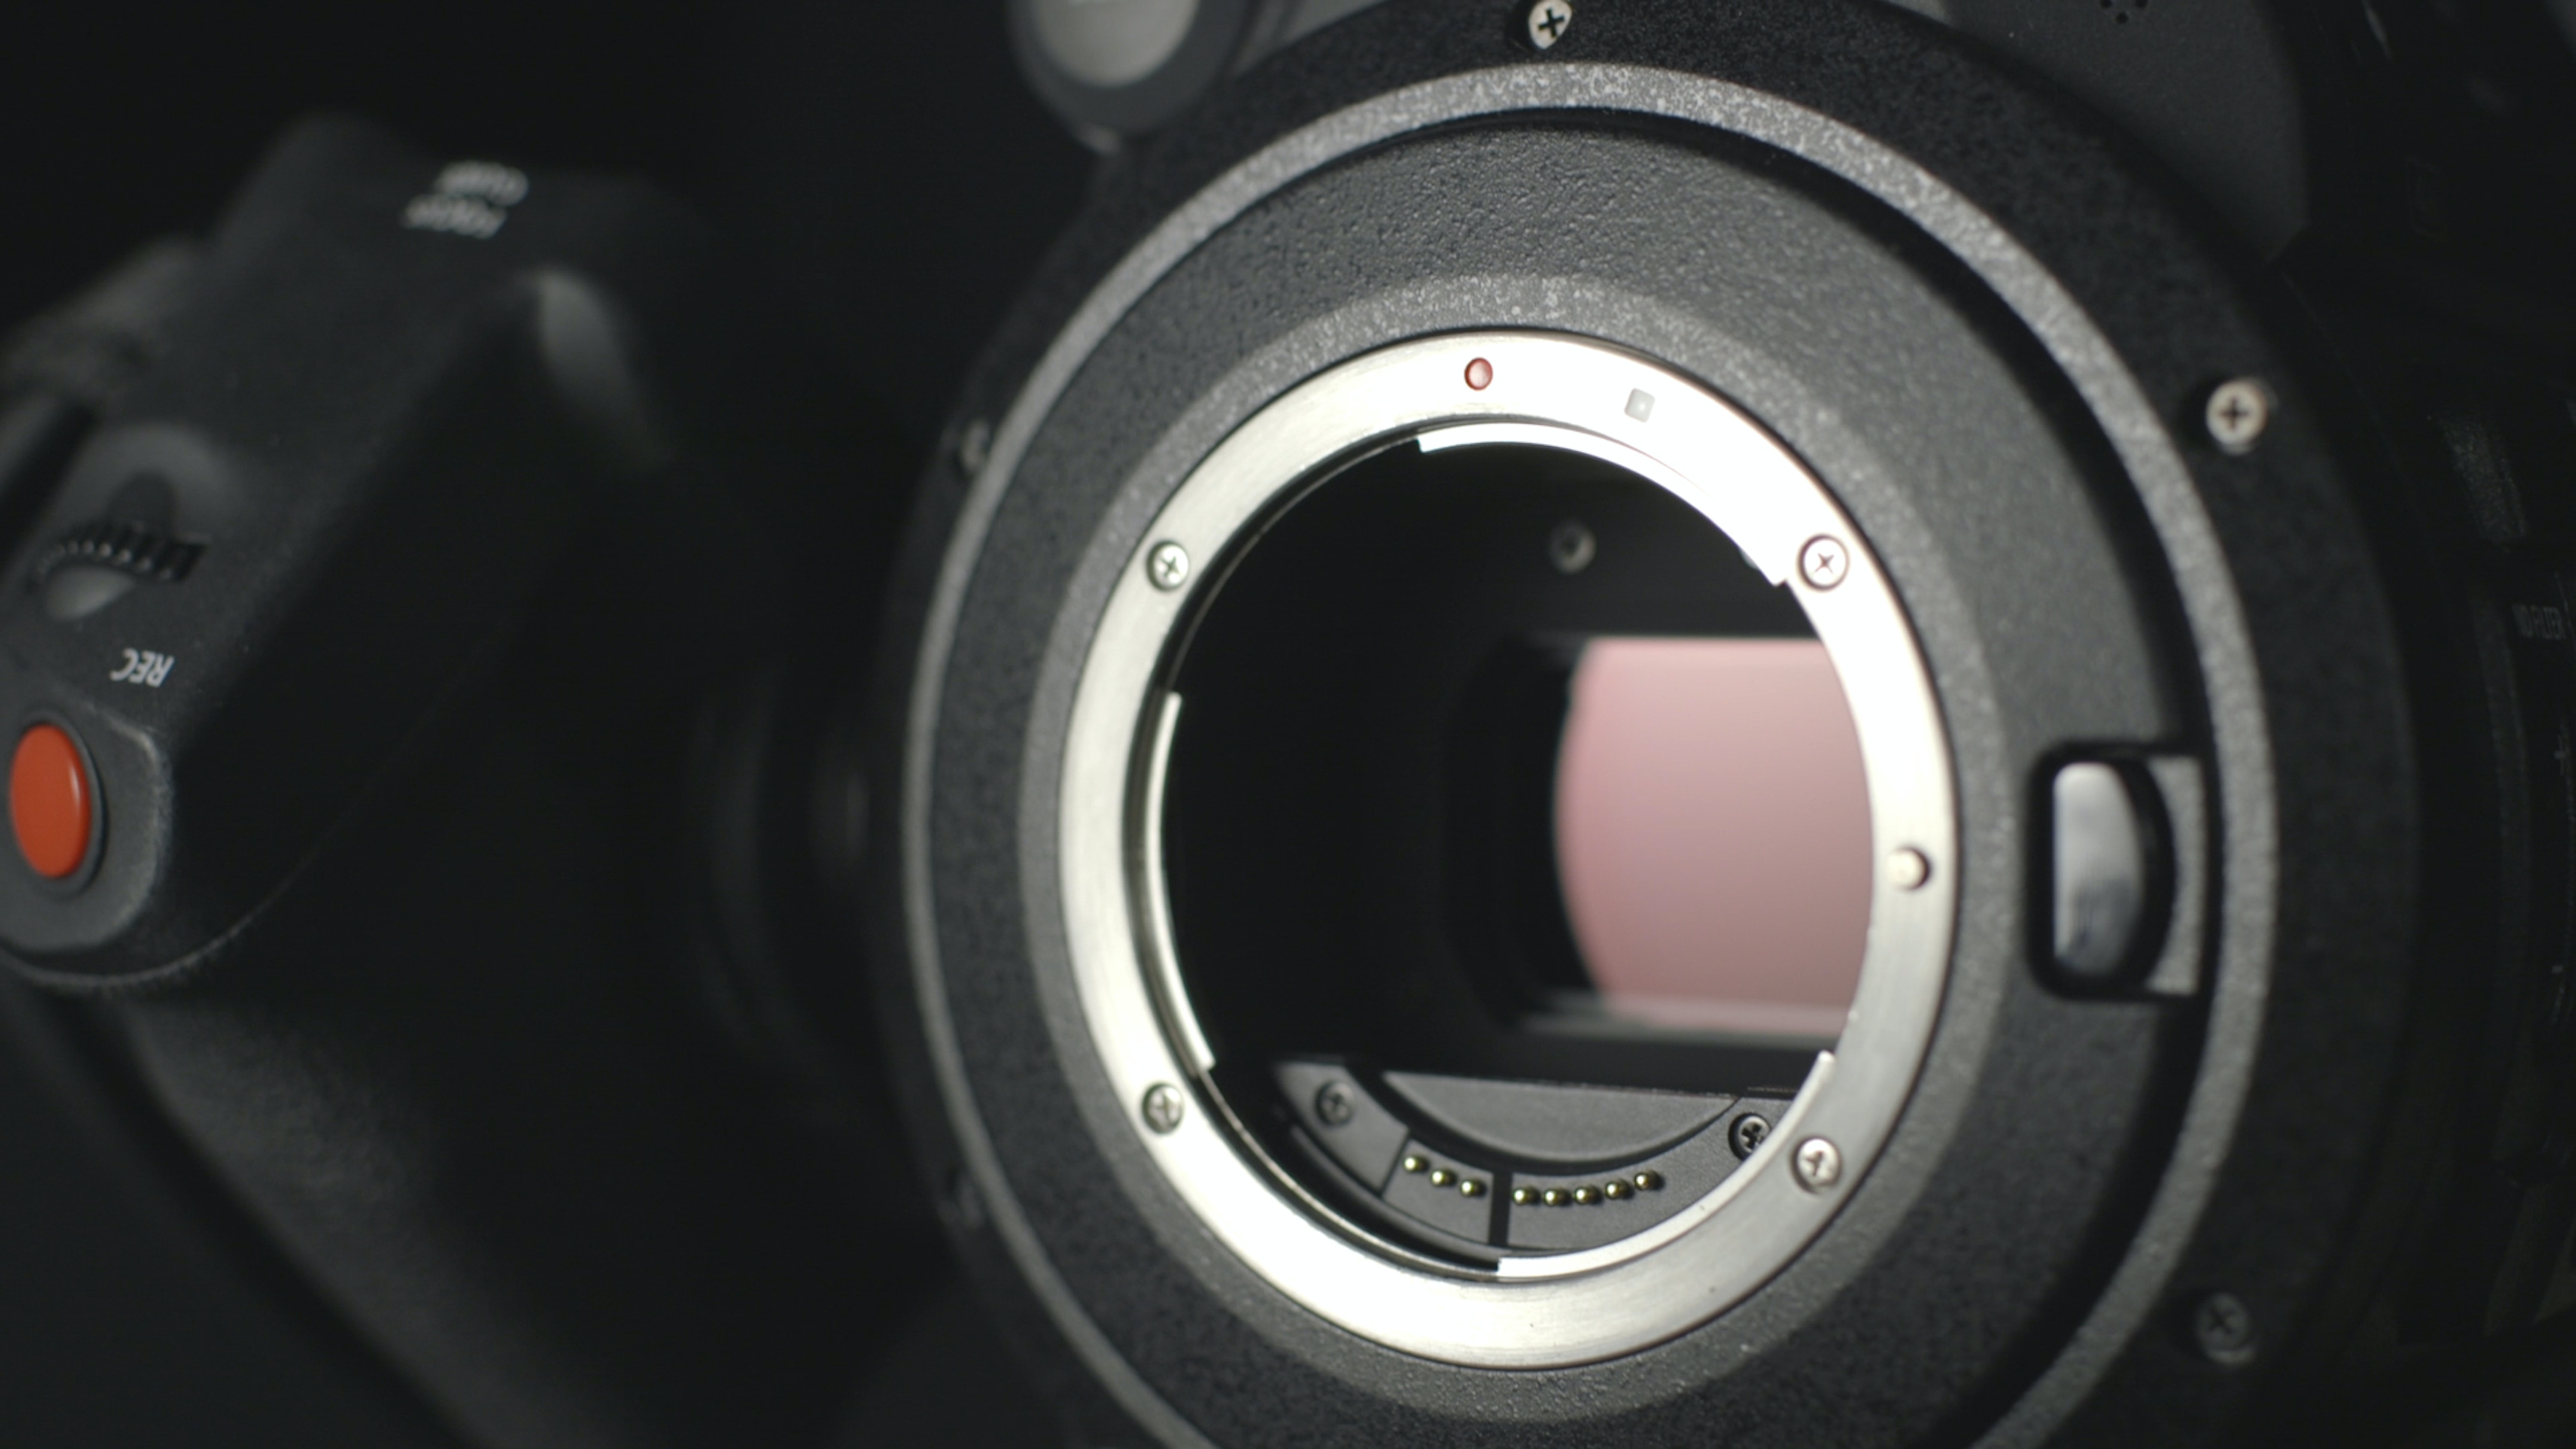 closeup photo of black and gray DSLR camera body